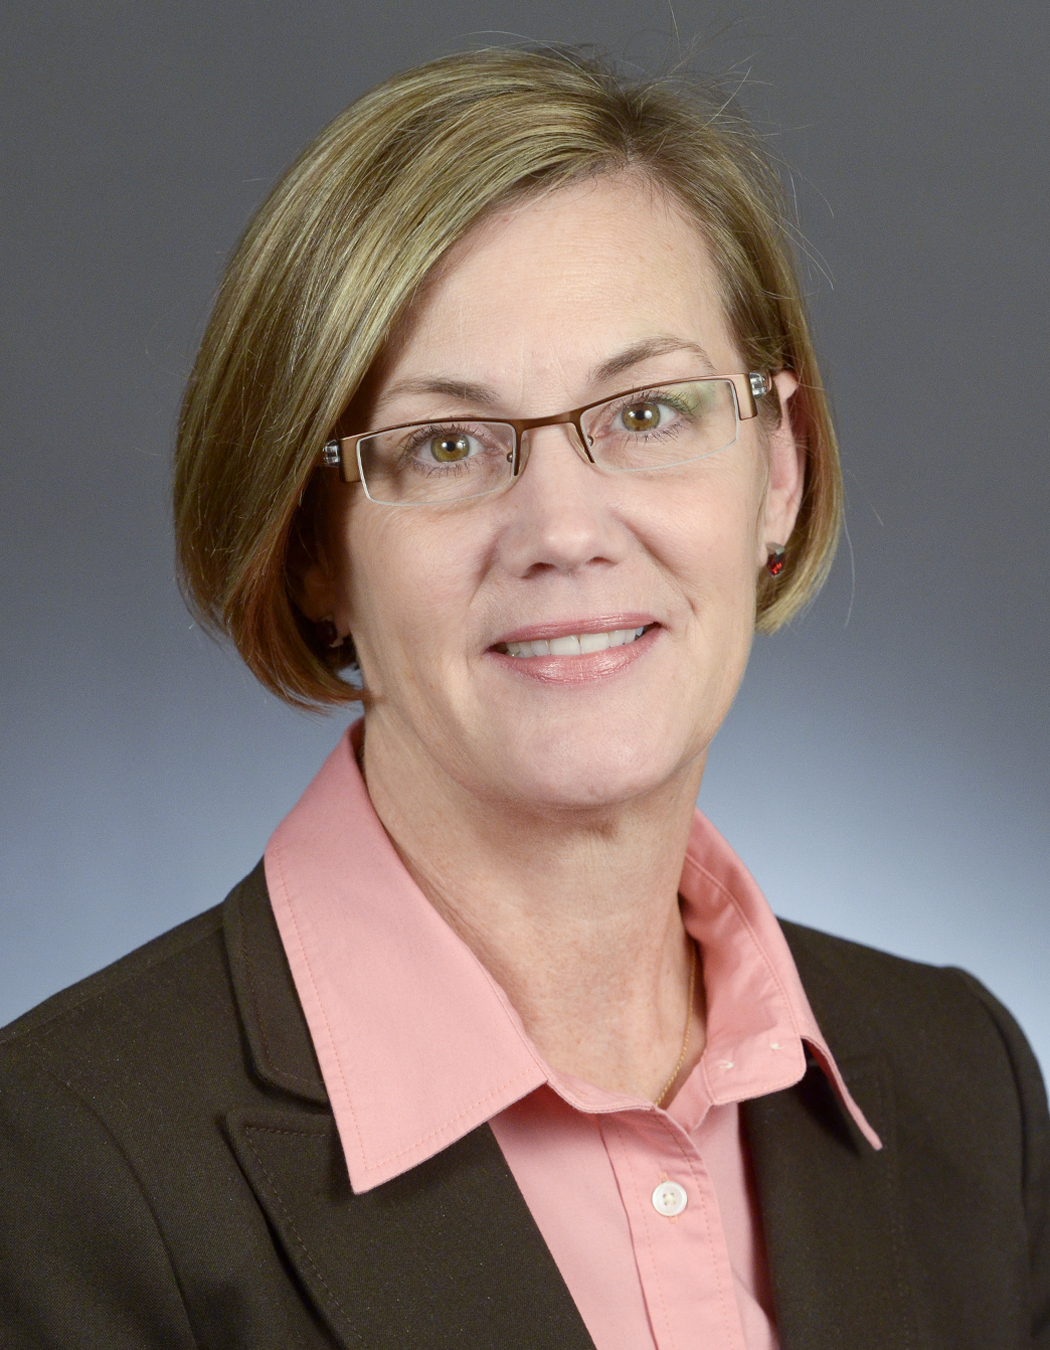 Representative Kim Norton